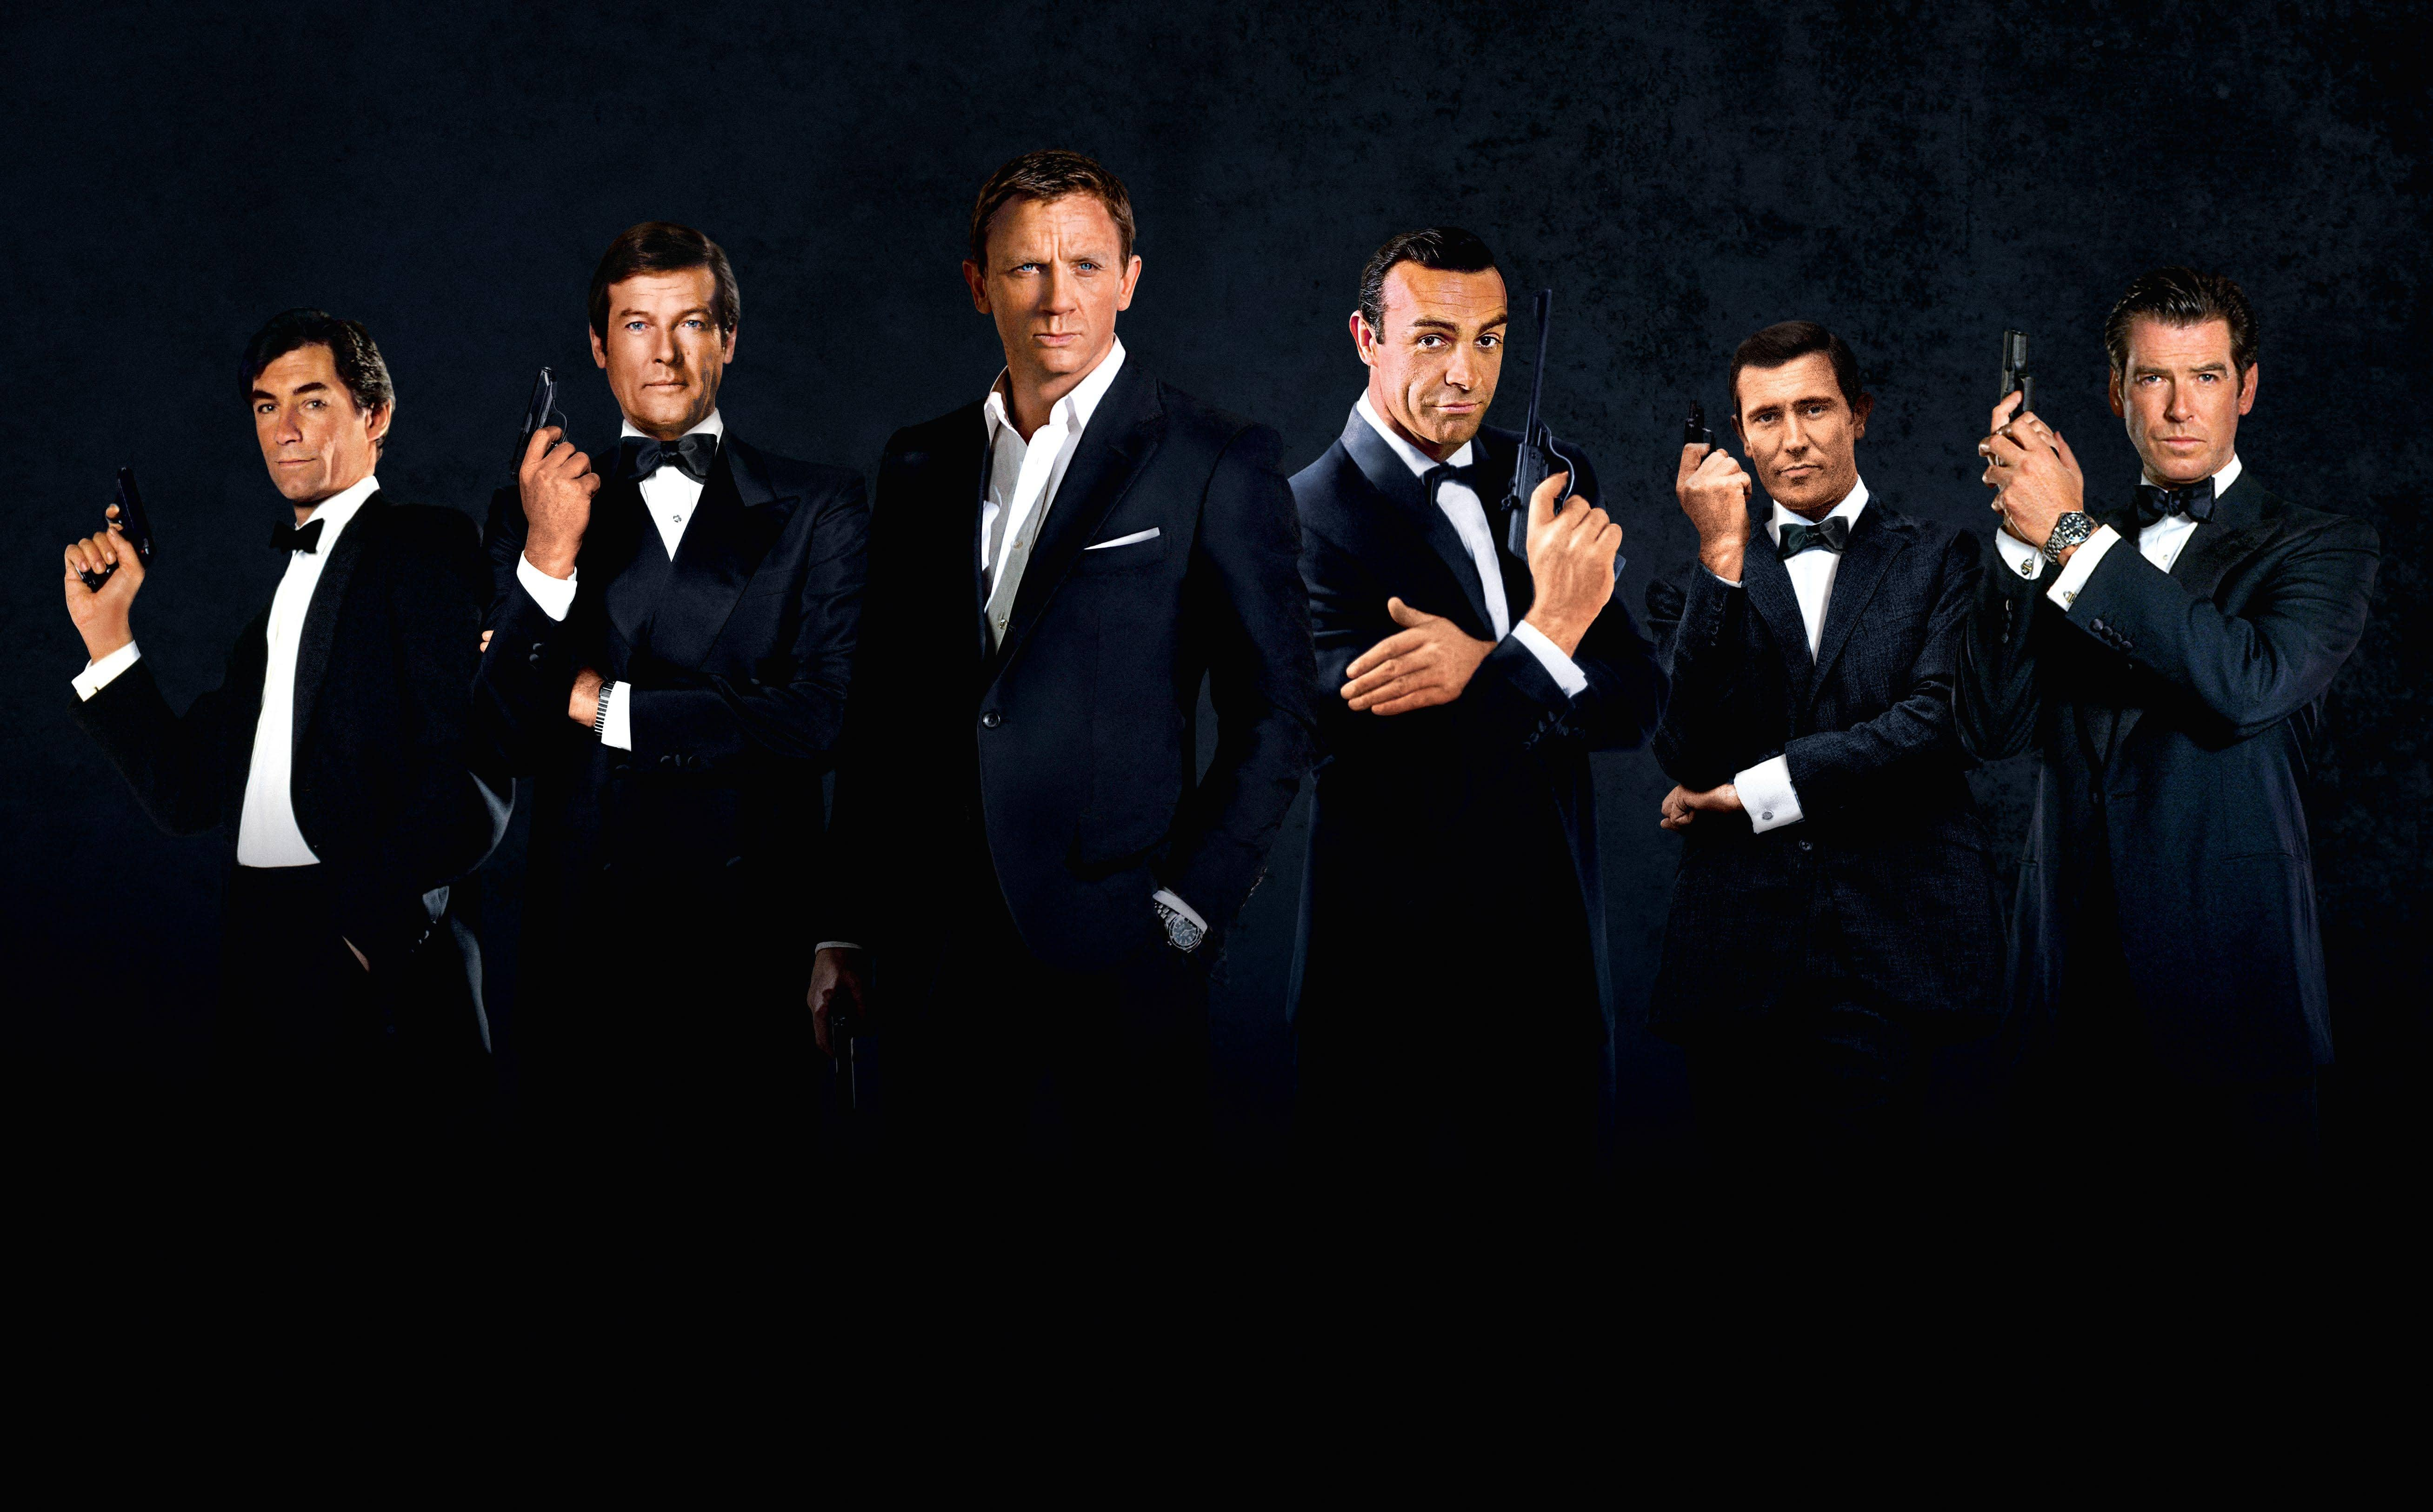 THE 007 FILES